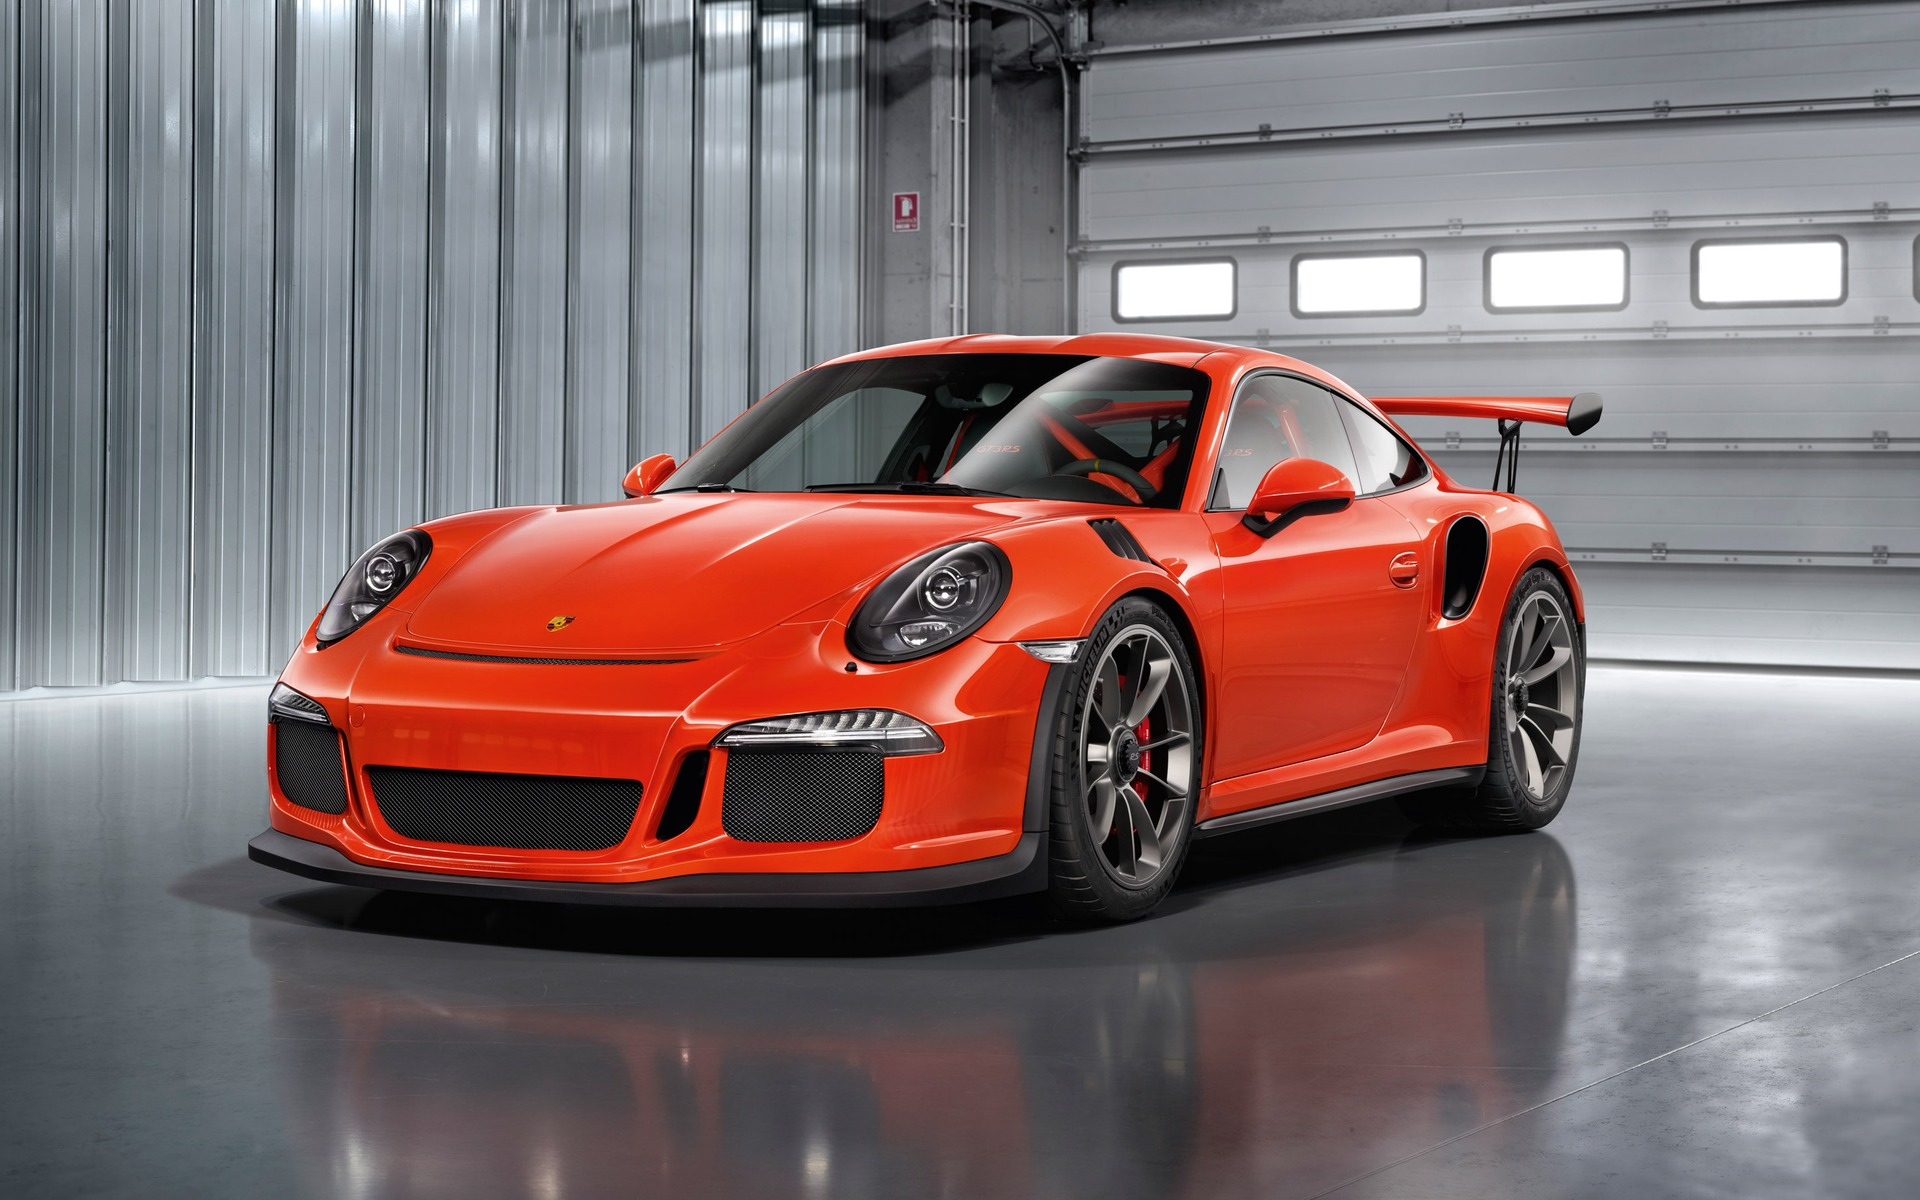 2016 porsche gt3 rs and cayman gt4: we're driving them this week